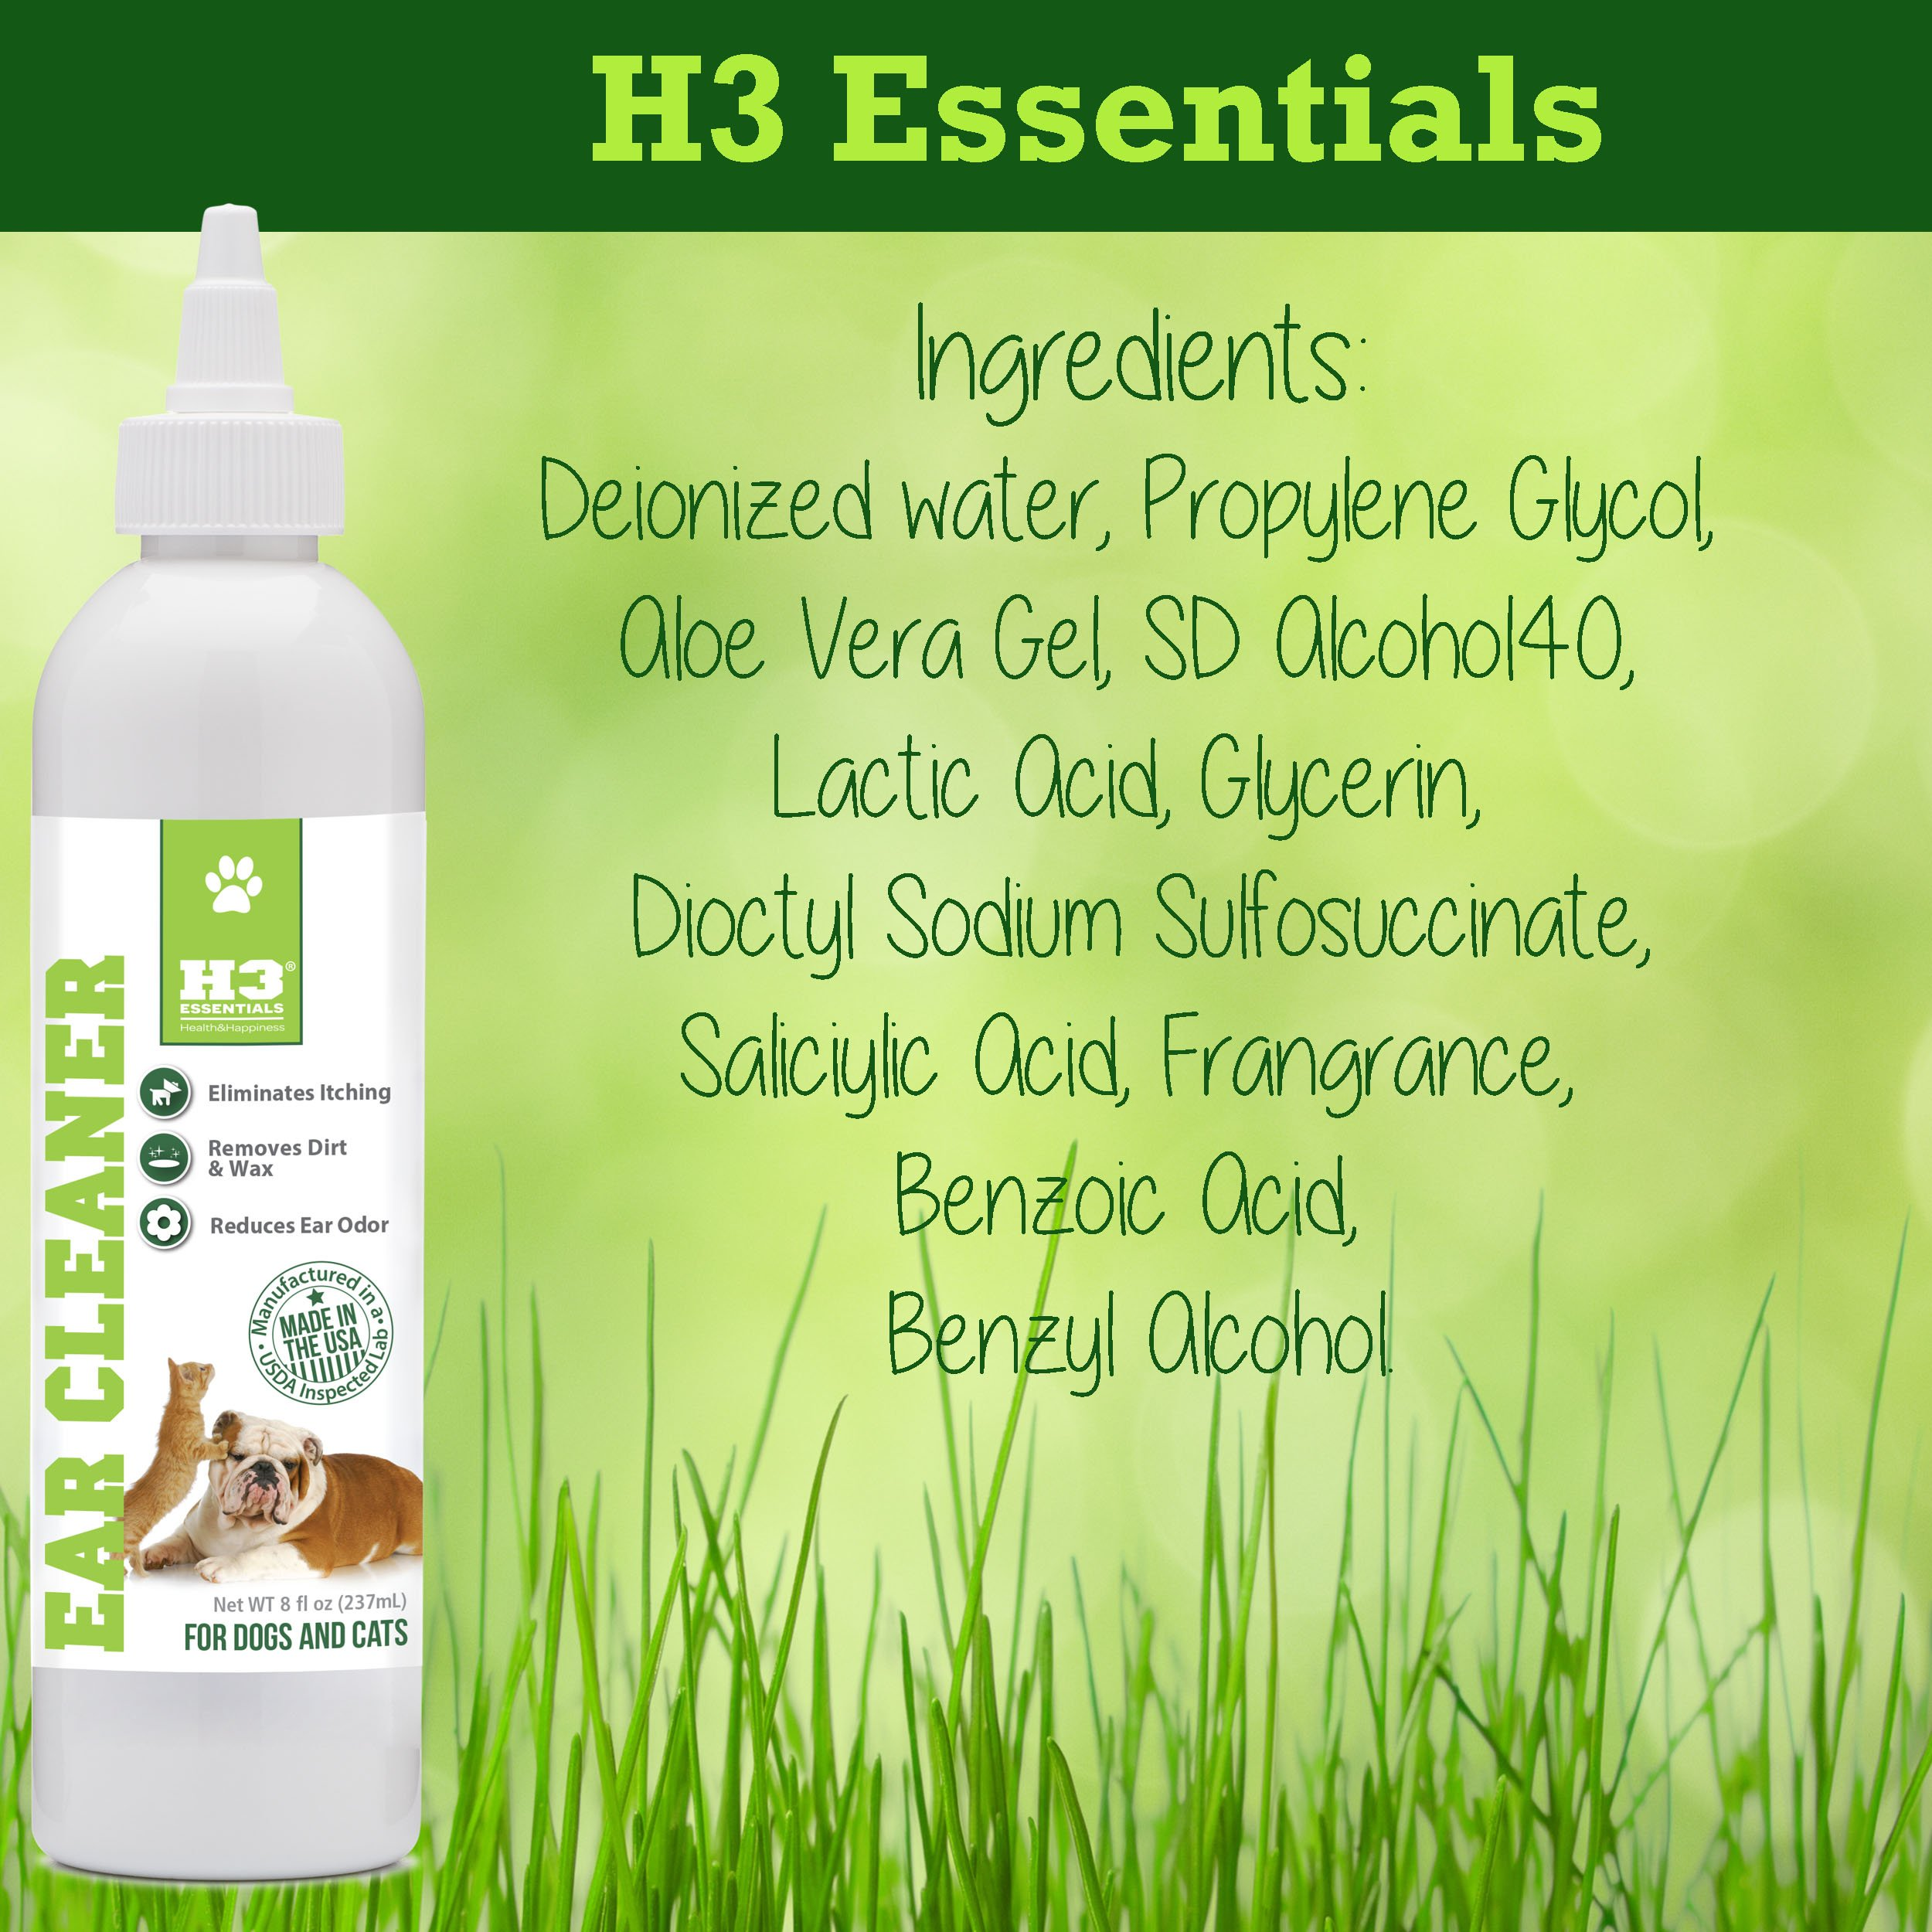 H3 Essentials Dog Ear Cleaner For Dogs and Cats with Aloe - Prevents Infection, Cleans and Dries Pets Ears - 8 oz by H3 Essentials (Image #6)